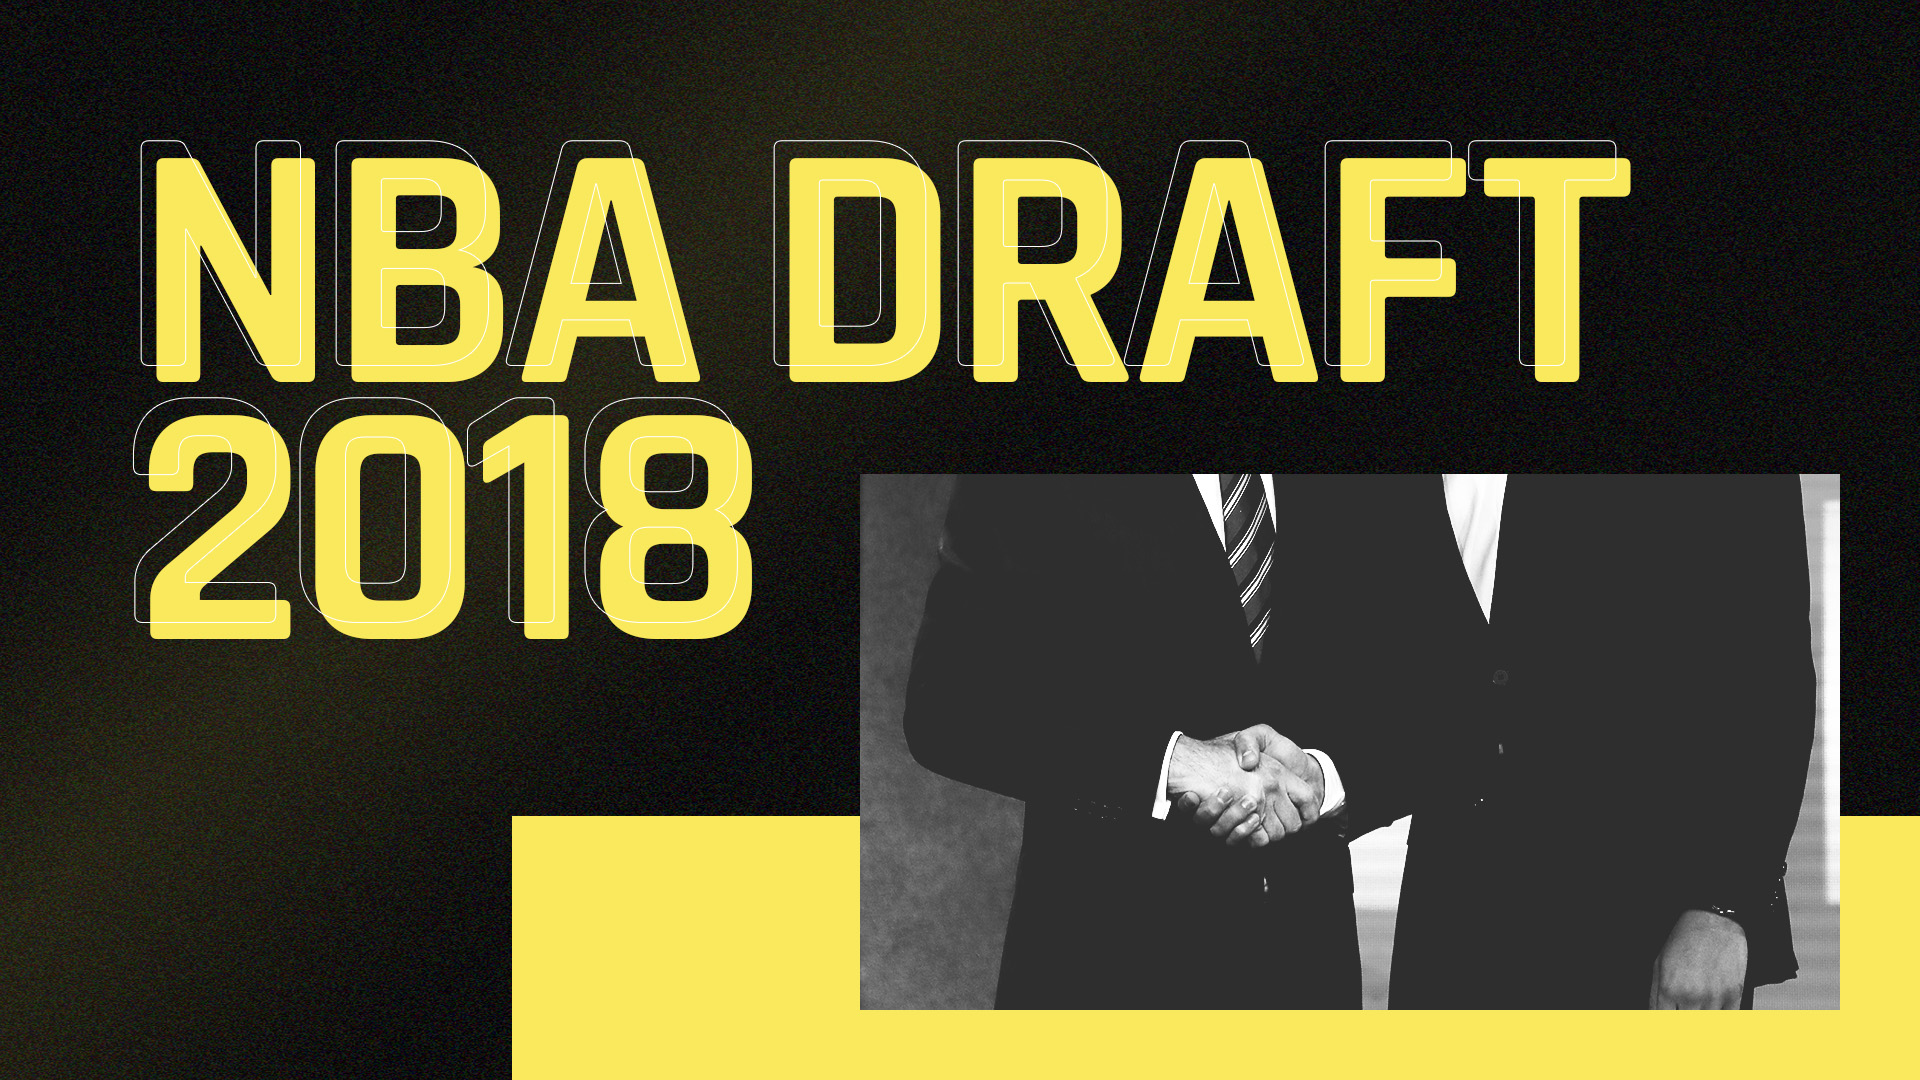 NBA Draft 2018 Luka Doncic supermodel mum steals show